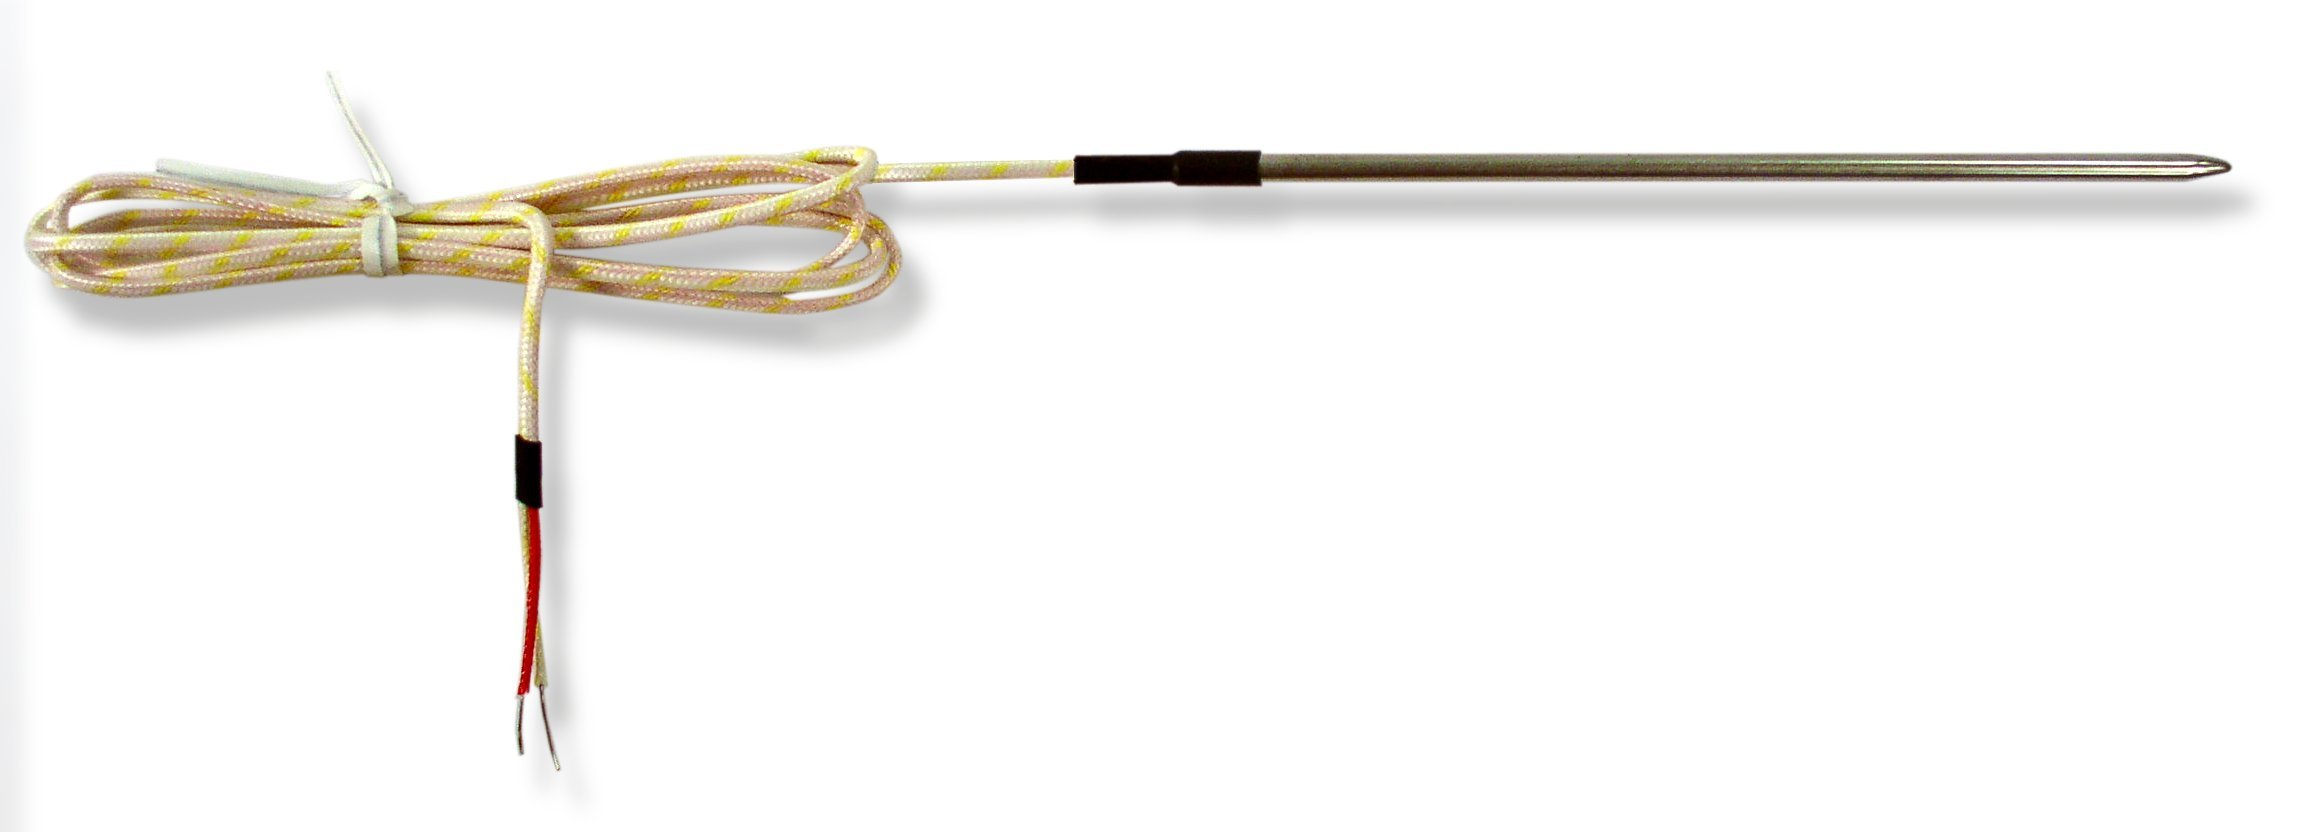 Cooper-Atkins 2020K Type K Thermocouple Probe, 4.75'' Shaft Length, -100 to +1,000 degrees F by Cooper